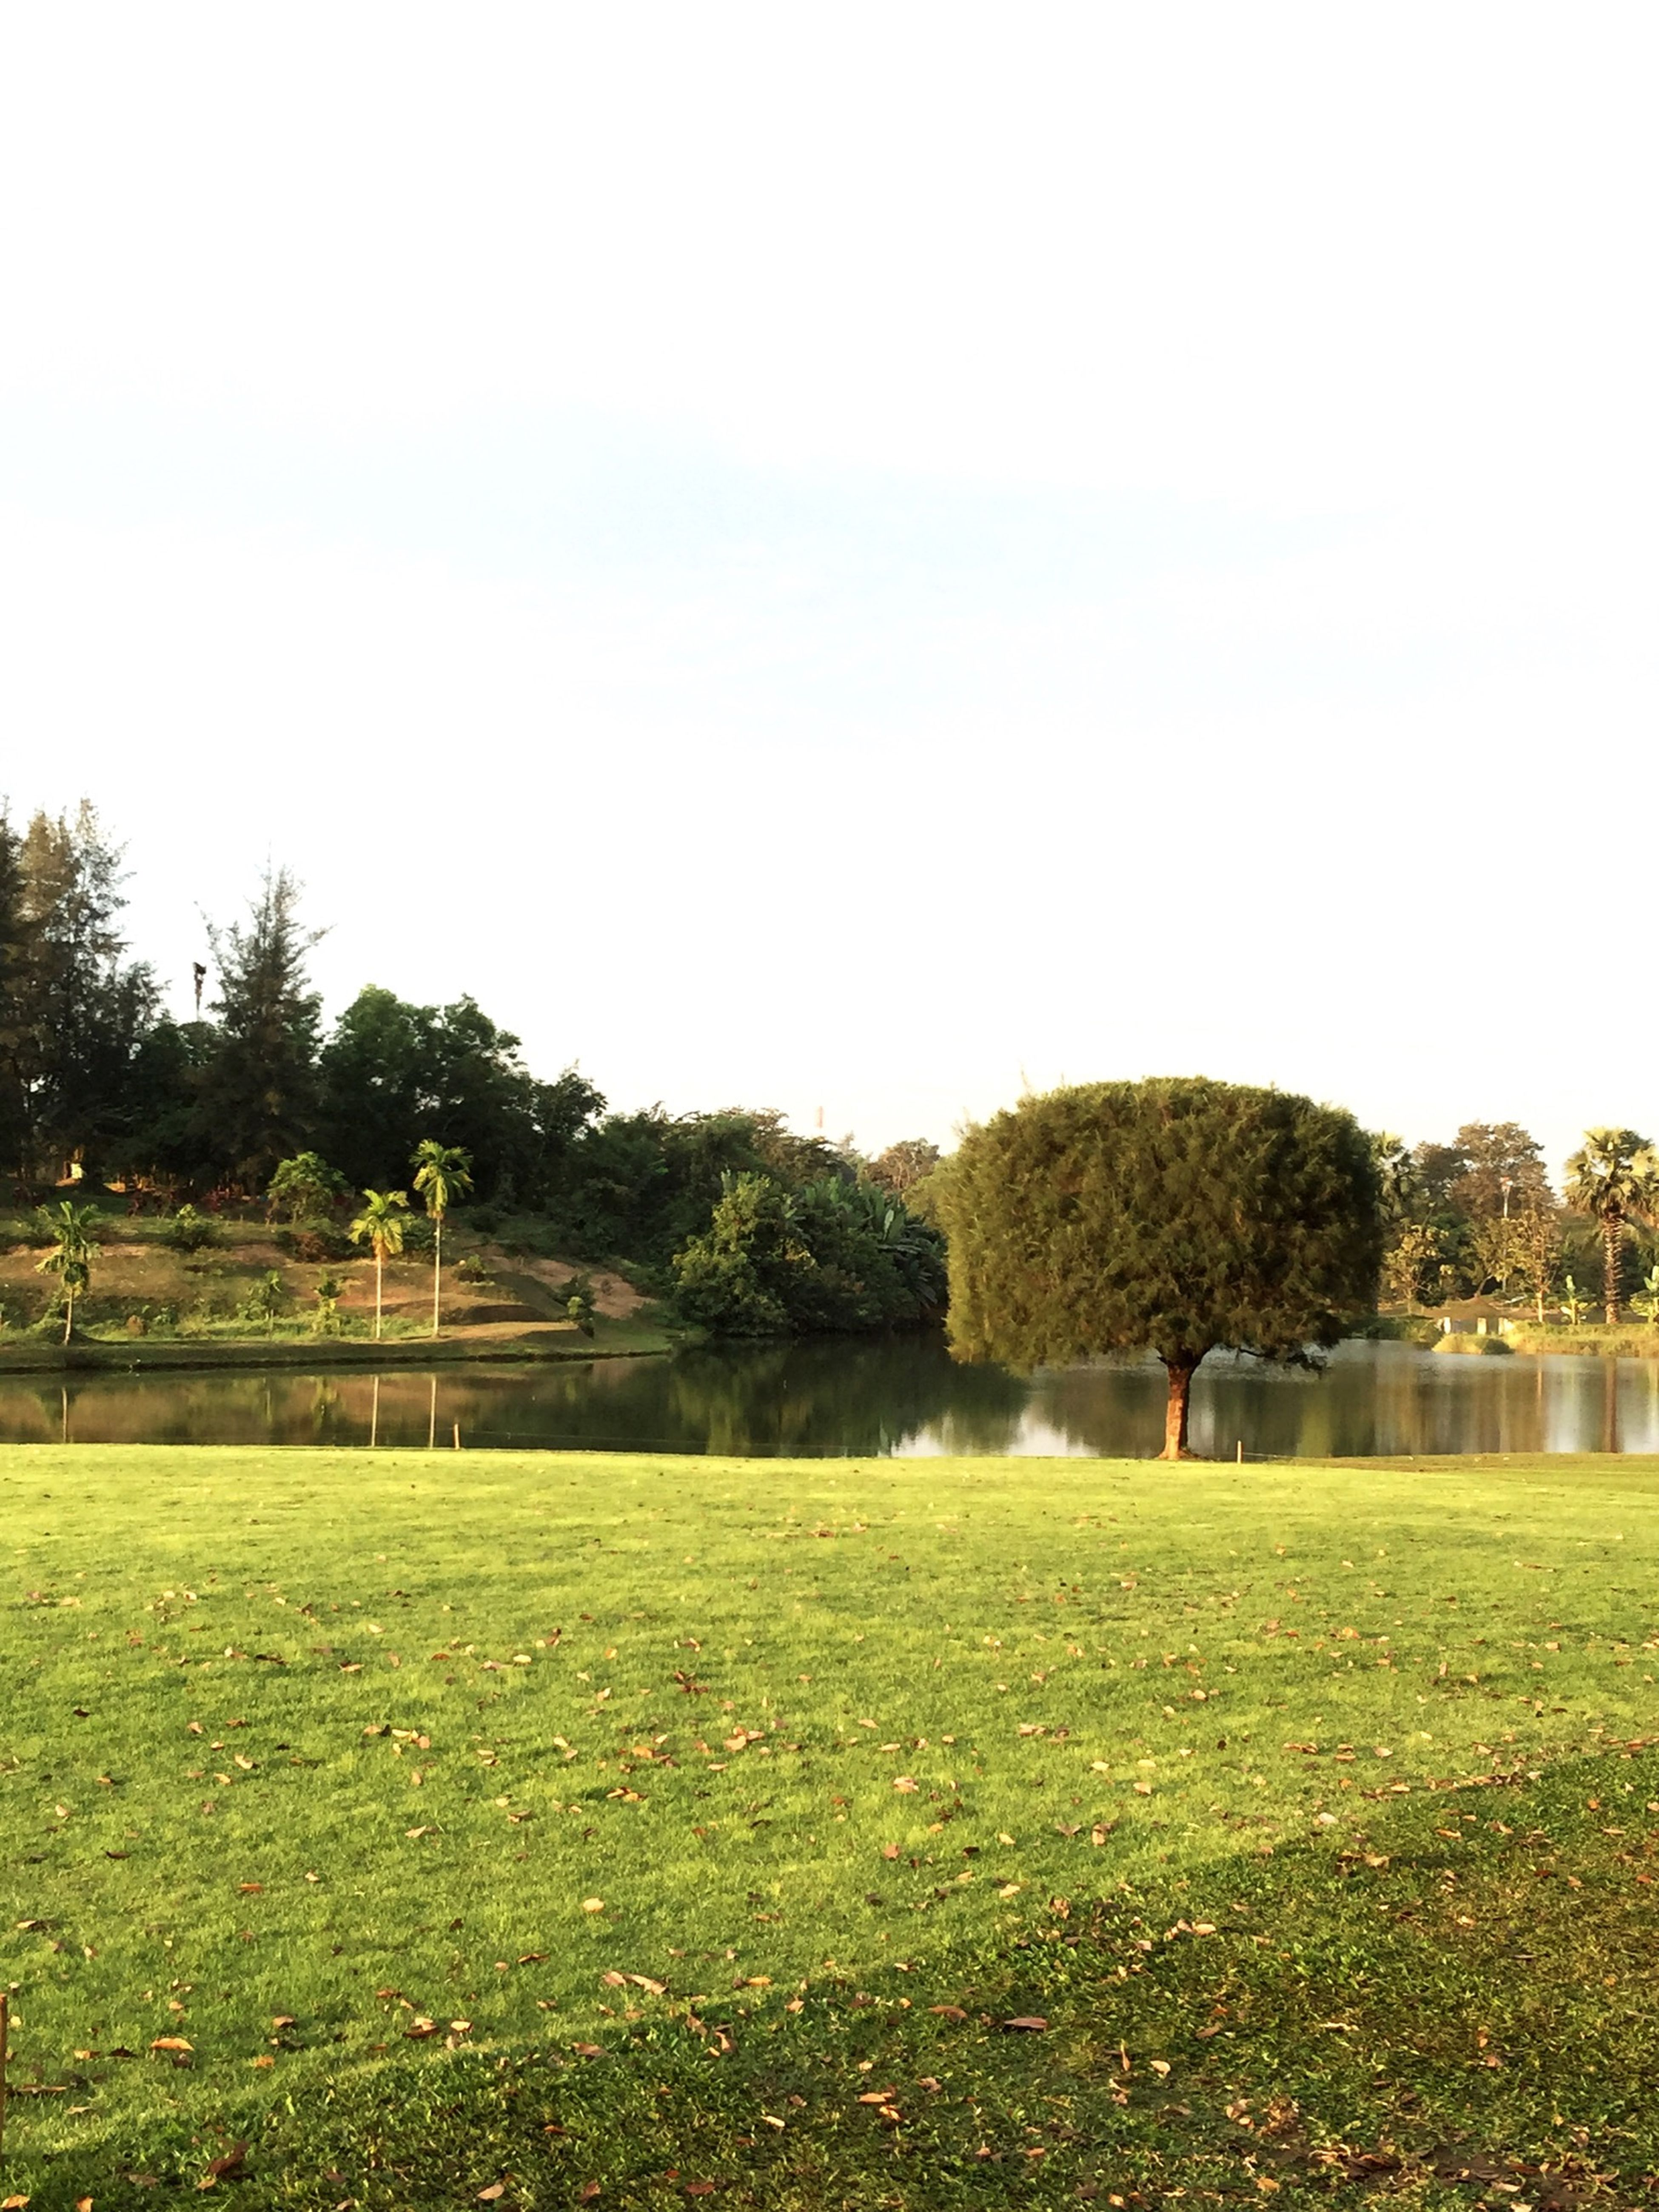 The Places I've Been Today YCDCGolfclub